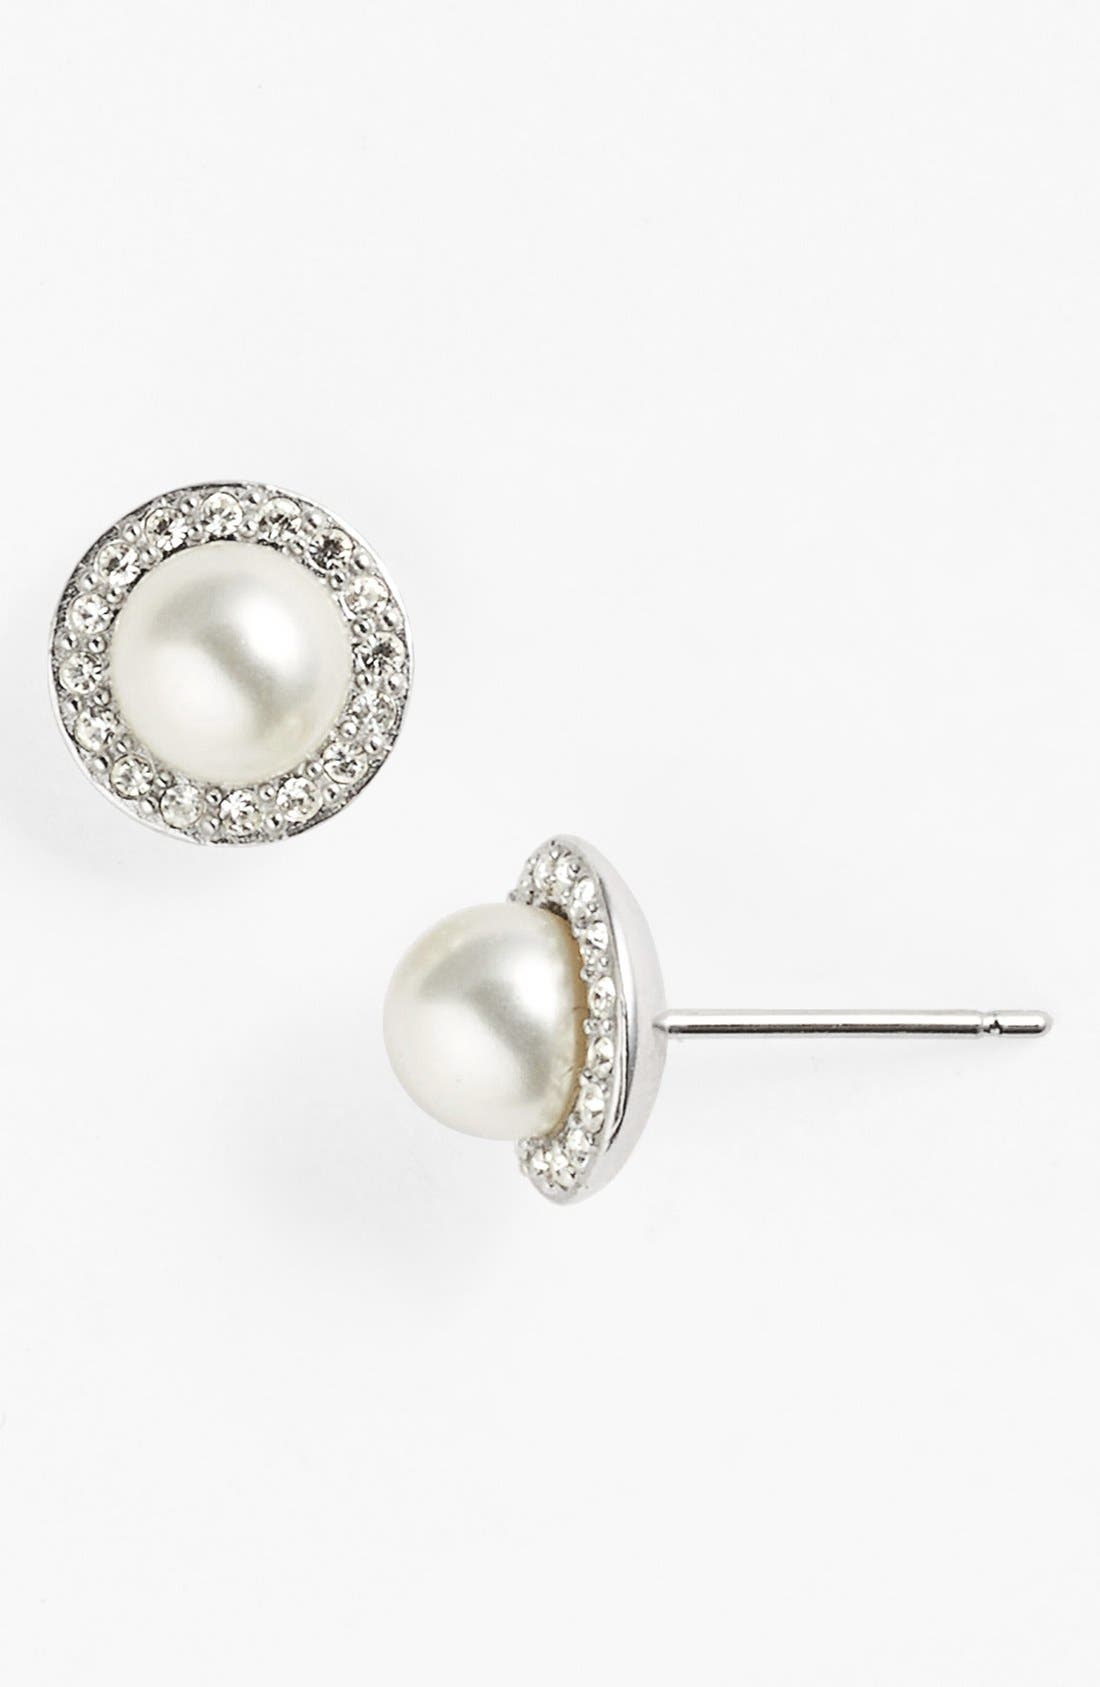 Alternate Image 1 Selected - Judith Jack 'Pearl Romance' Faux Pearl Stud Earrings